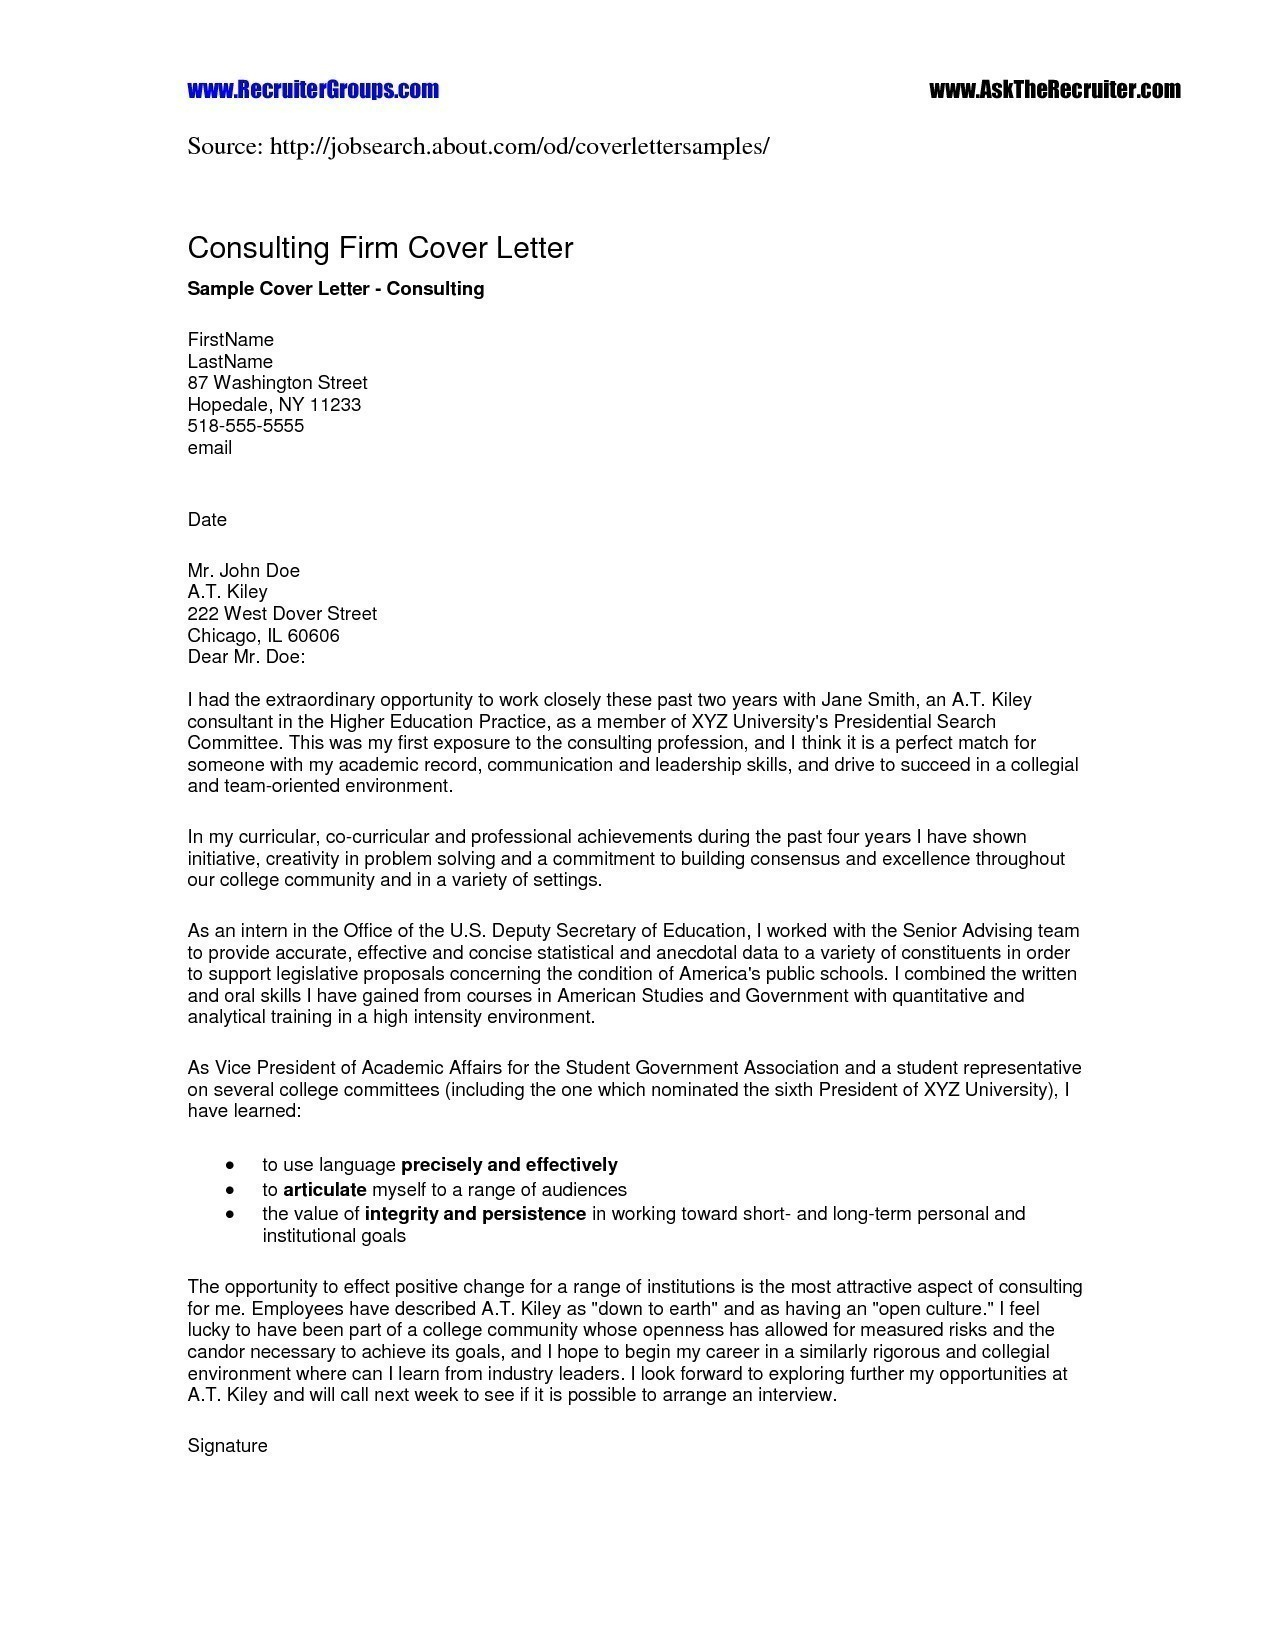 Offer Letter Email Template - How to Write Job Fer Letter Fresh Job Fer Letter Sample Best Job